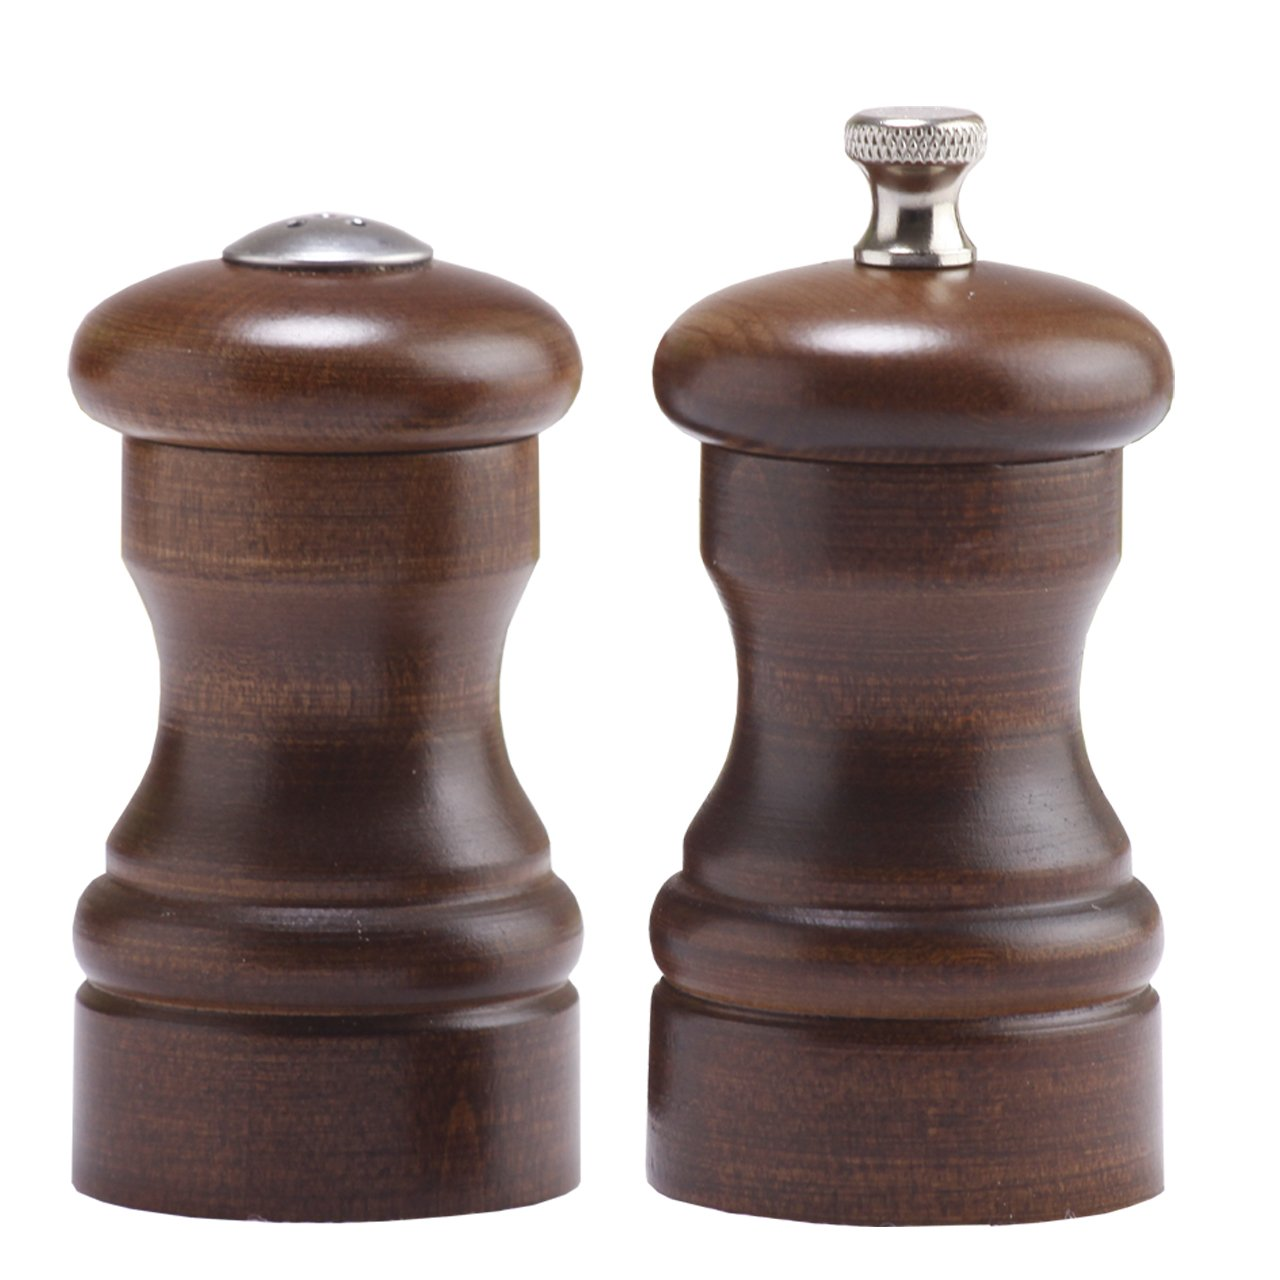 Chef Specialties 04100 4 Inch - 10cm CapstanWalnut Pepper Mill Salt Shaker Set